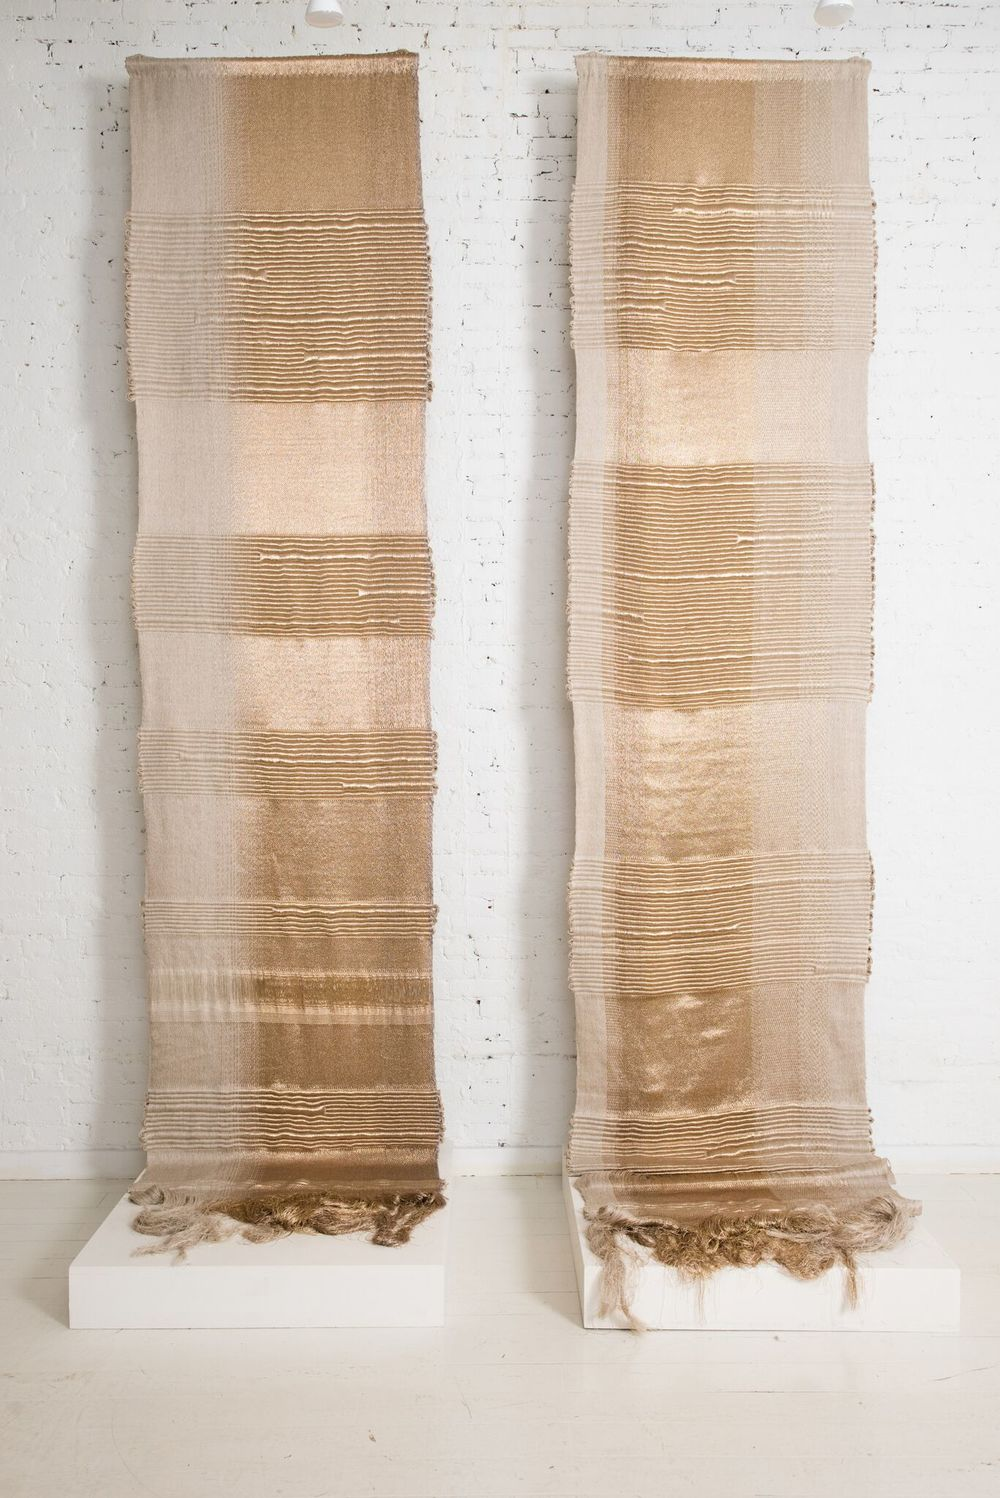 Apollo, Hiroko Takeda, 2015, NY Studio, 192%22h x 36%22w, mixed natural & metallic 4.jpg